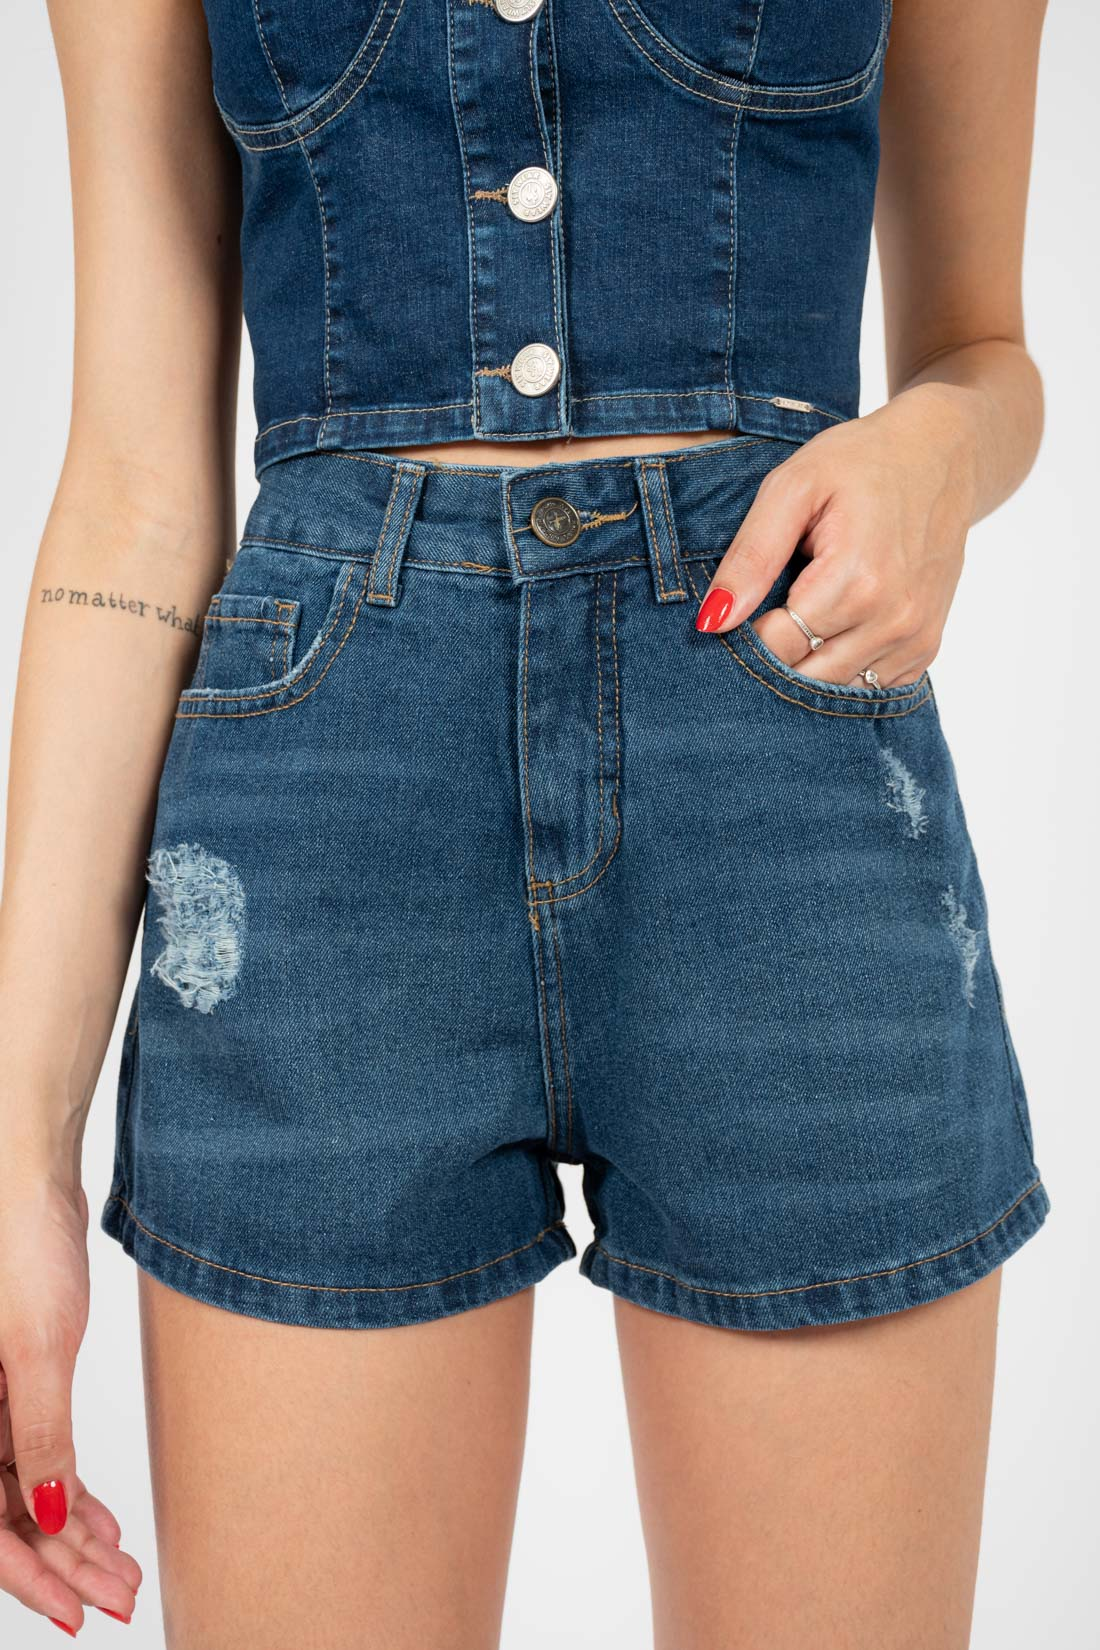 Shorts Jeans Hering Puido